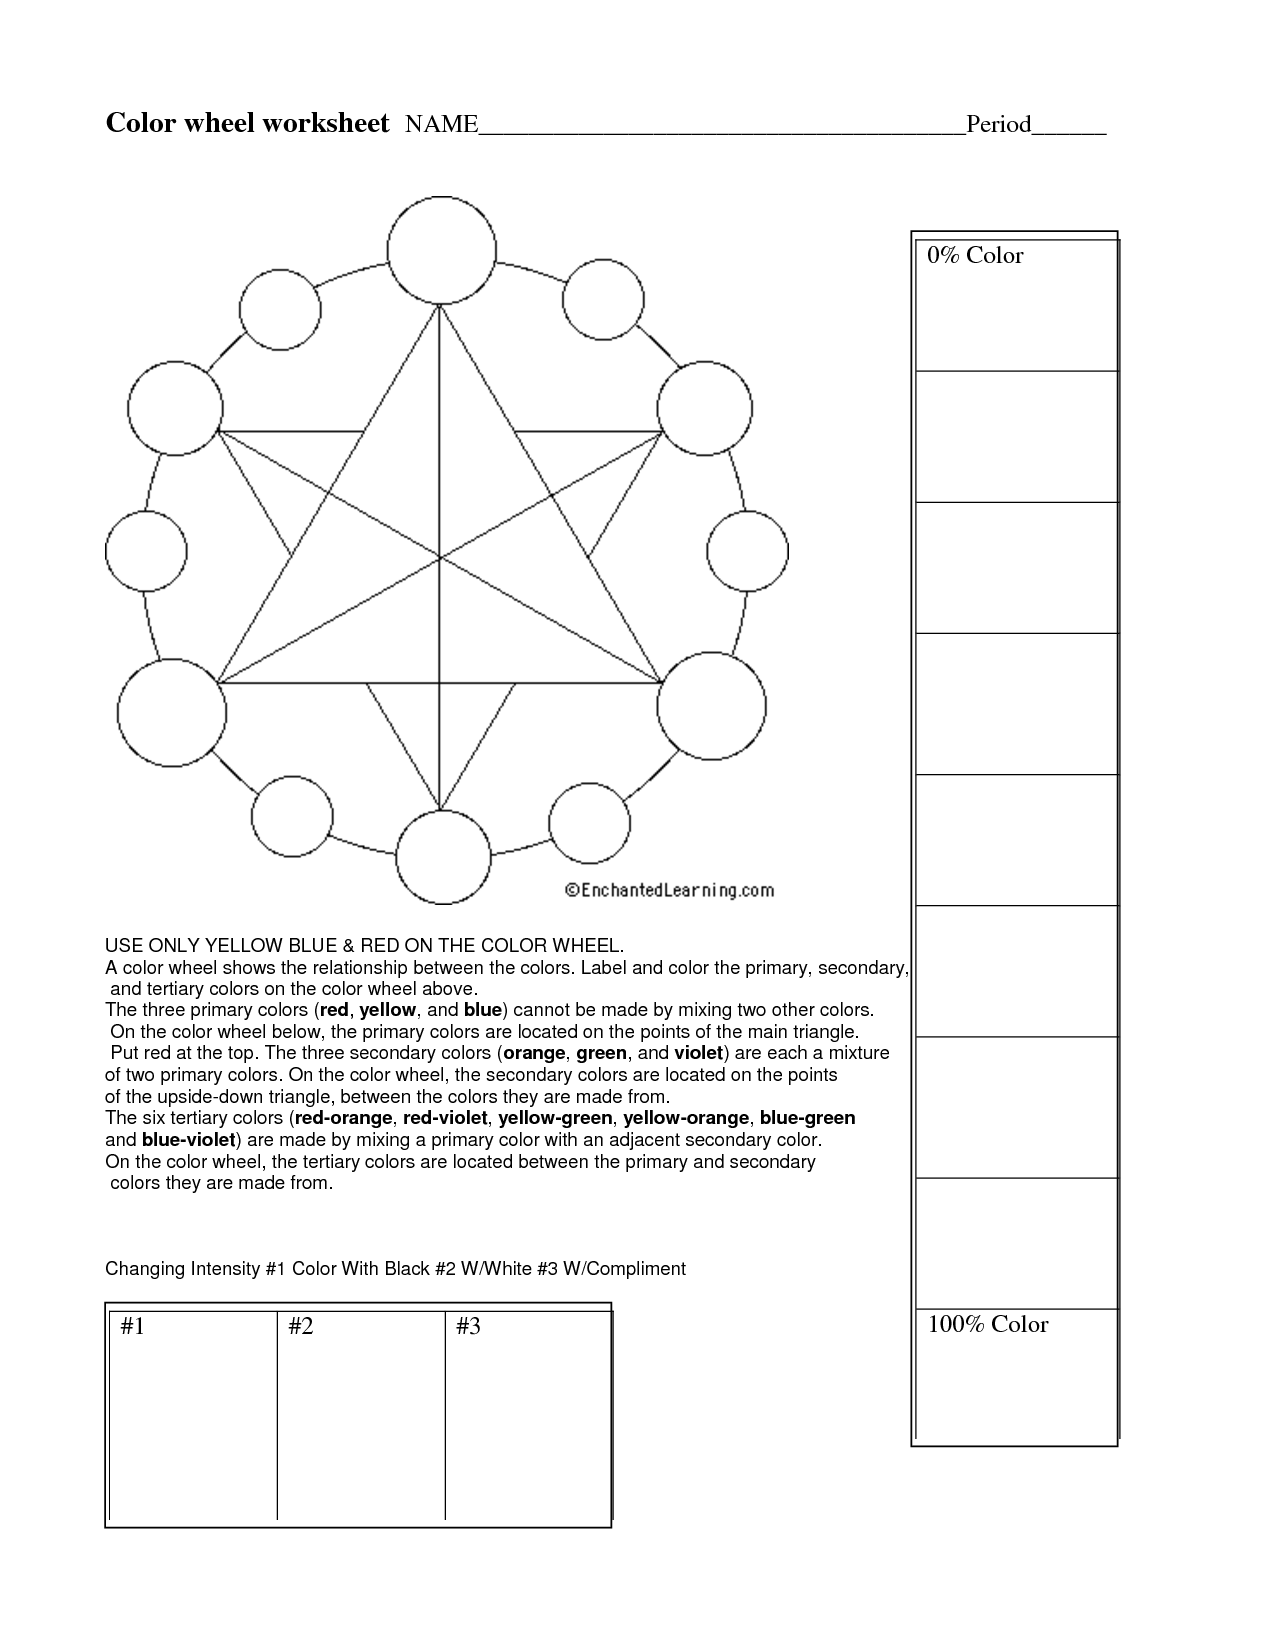 17 Best Images Of Color Wheel Worksheets